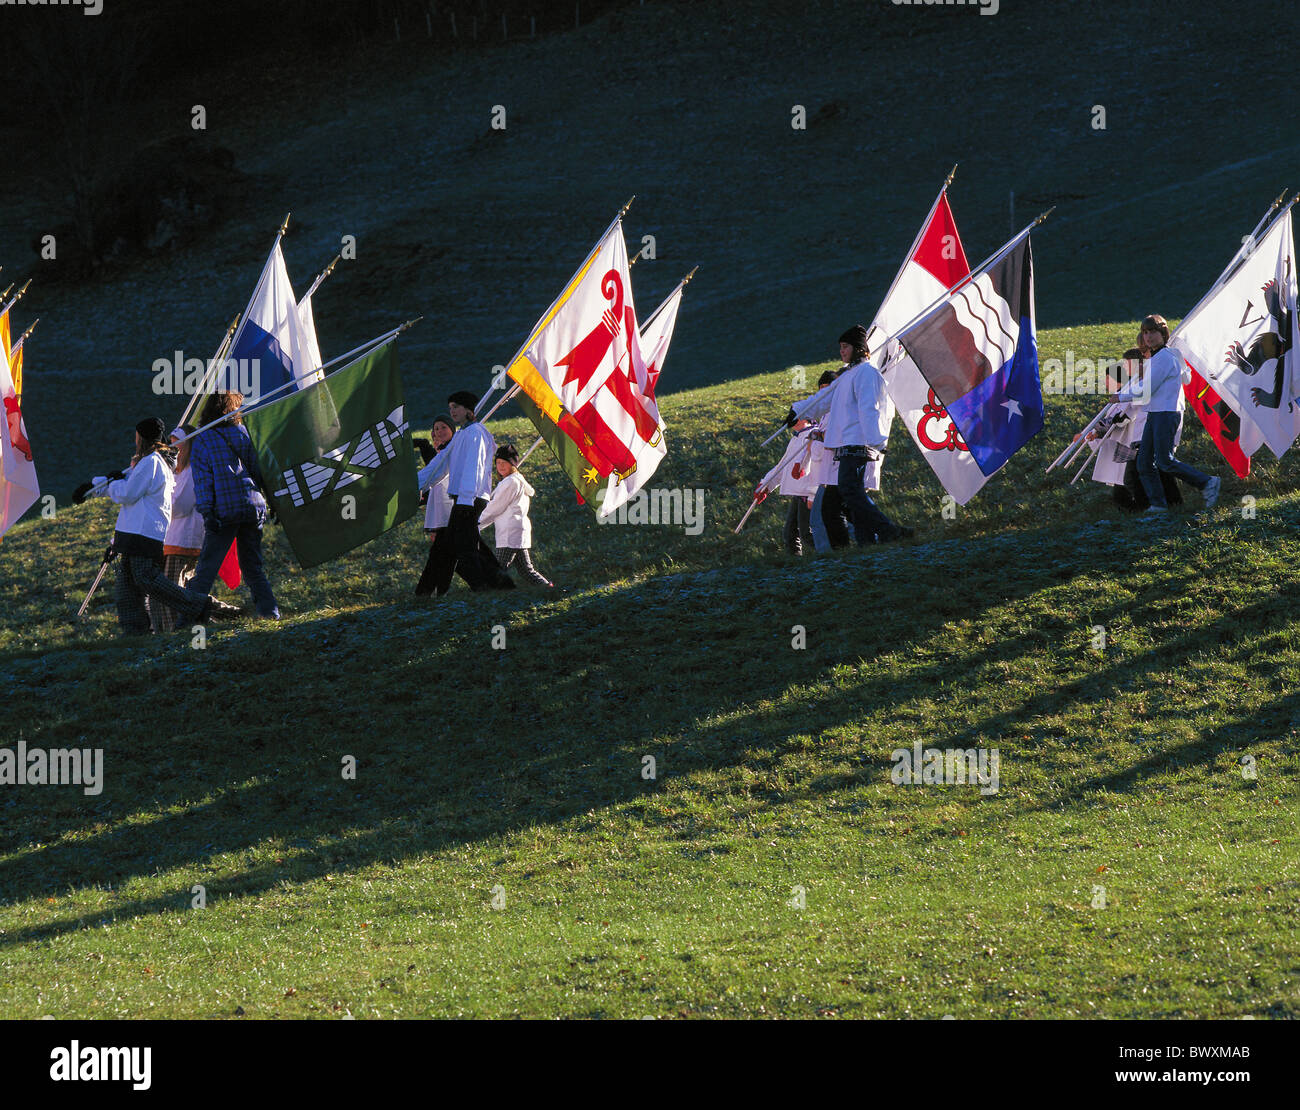 dusk twilight standard-bearer ensign commemorative celebration anniversary youngsters cantons battle fight - Stock Image